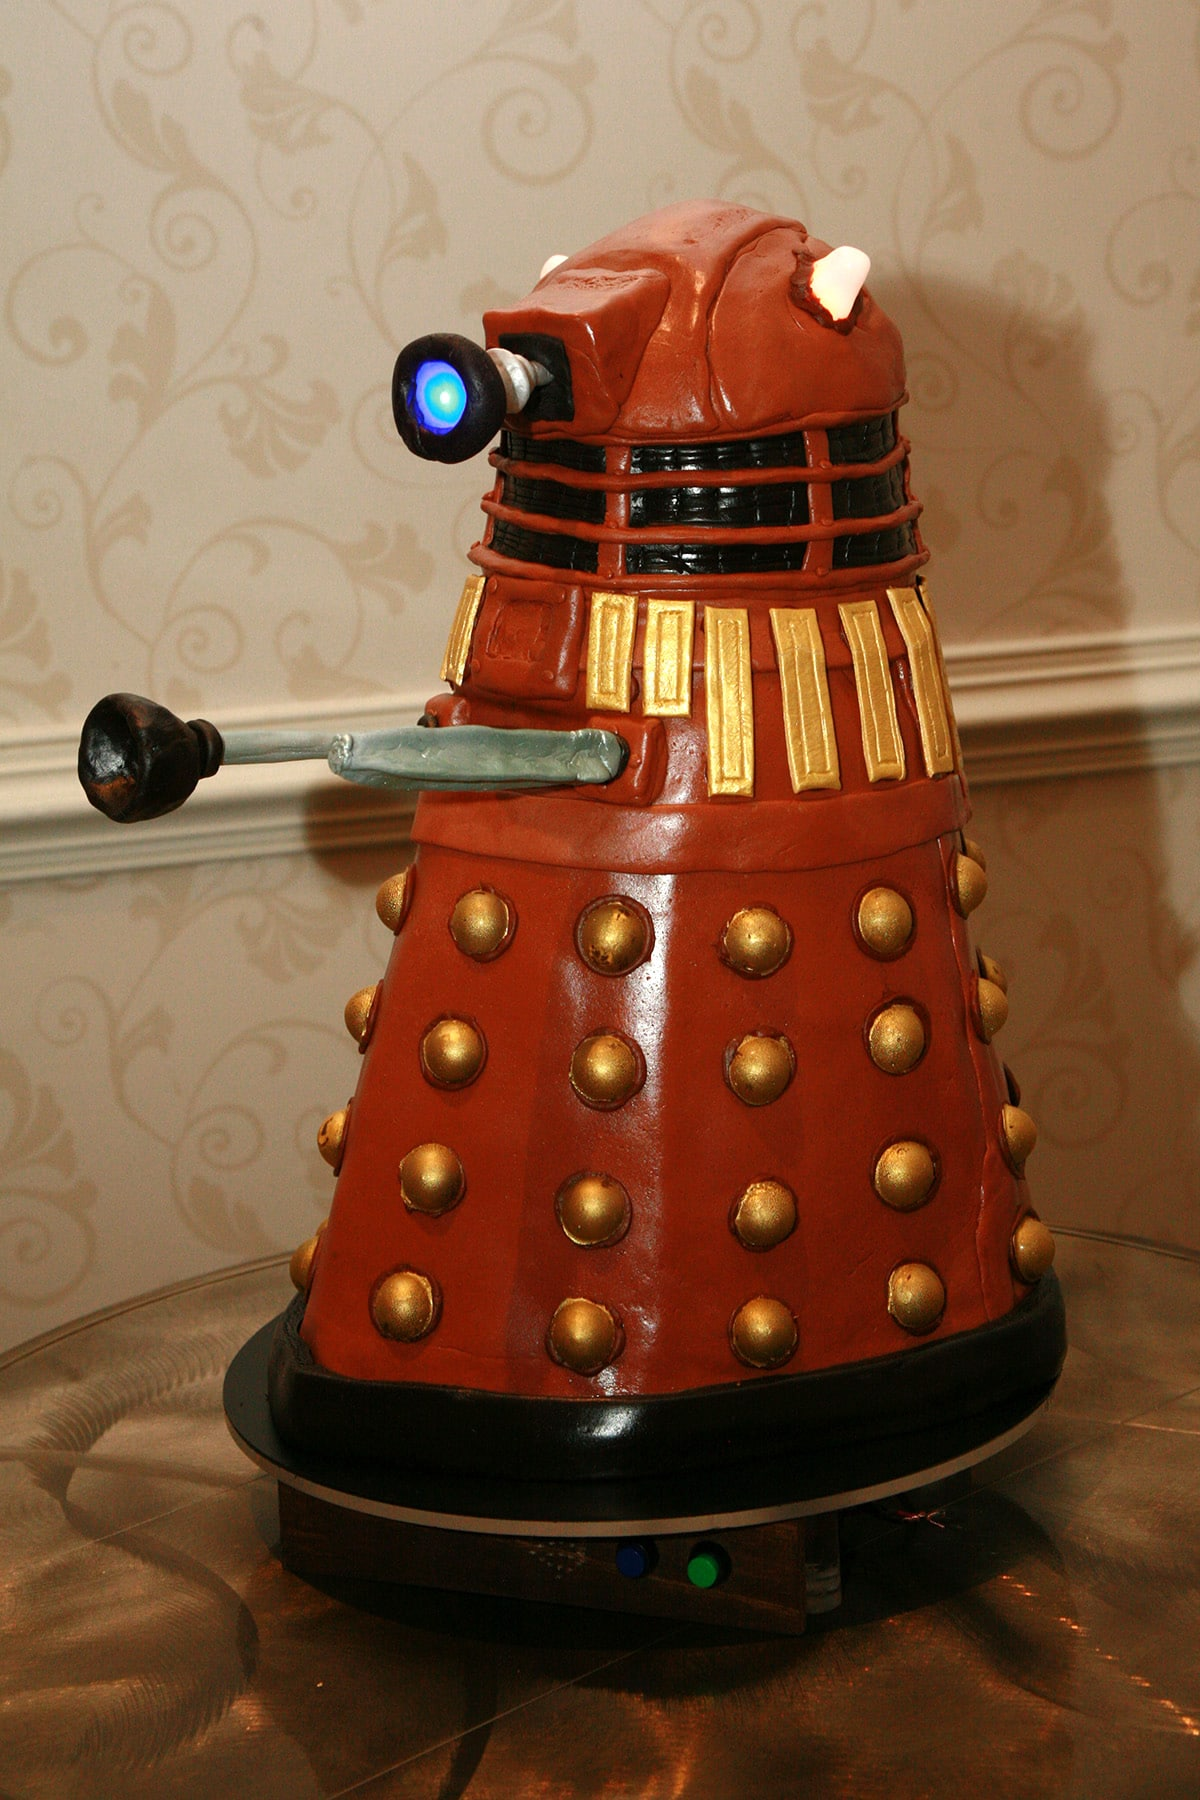 A brown Dalek cake on a hotel table.